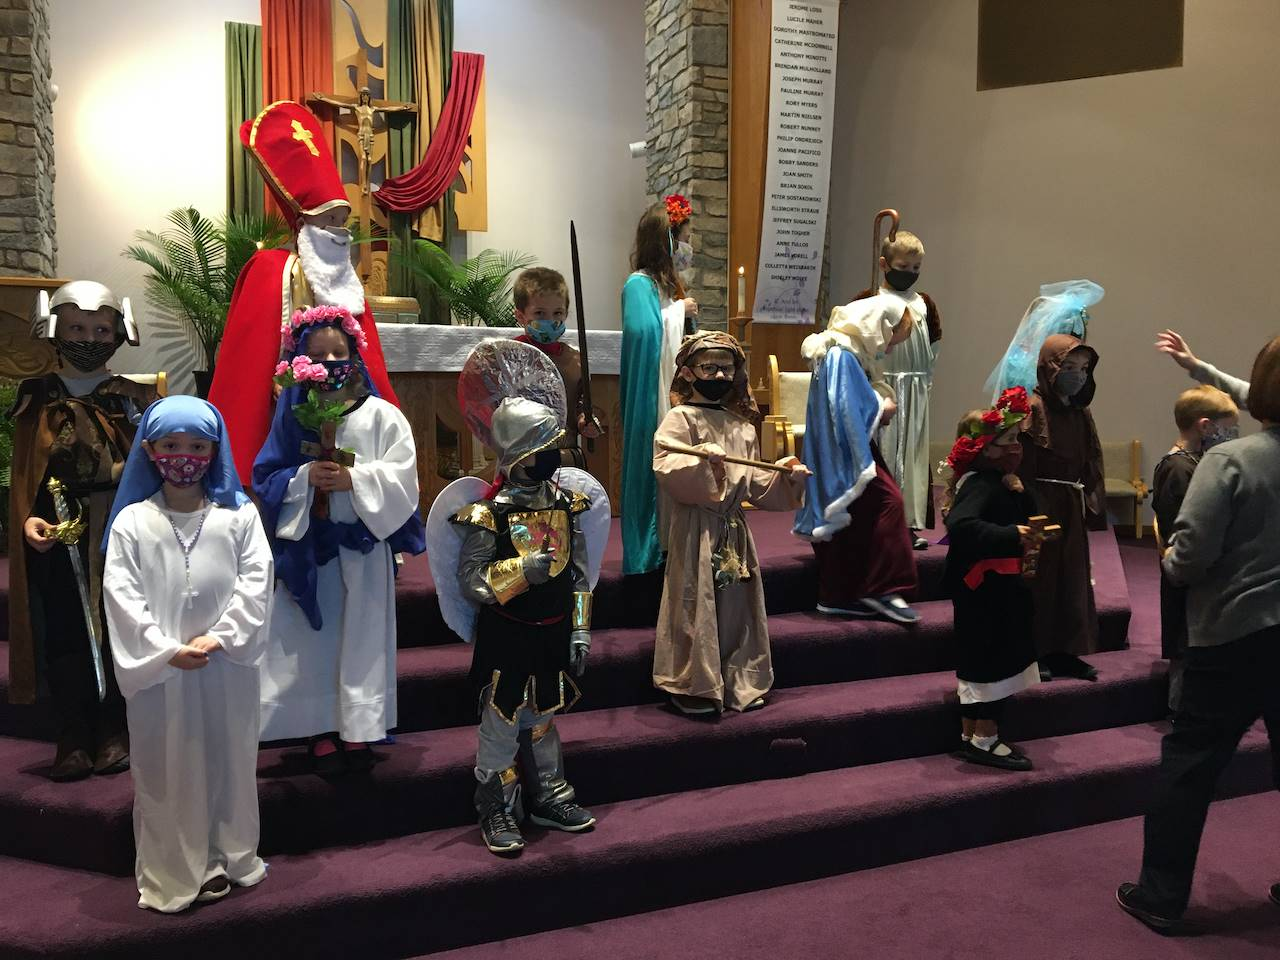 1st graders pose for a picture dressed up as saints